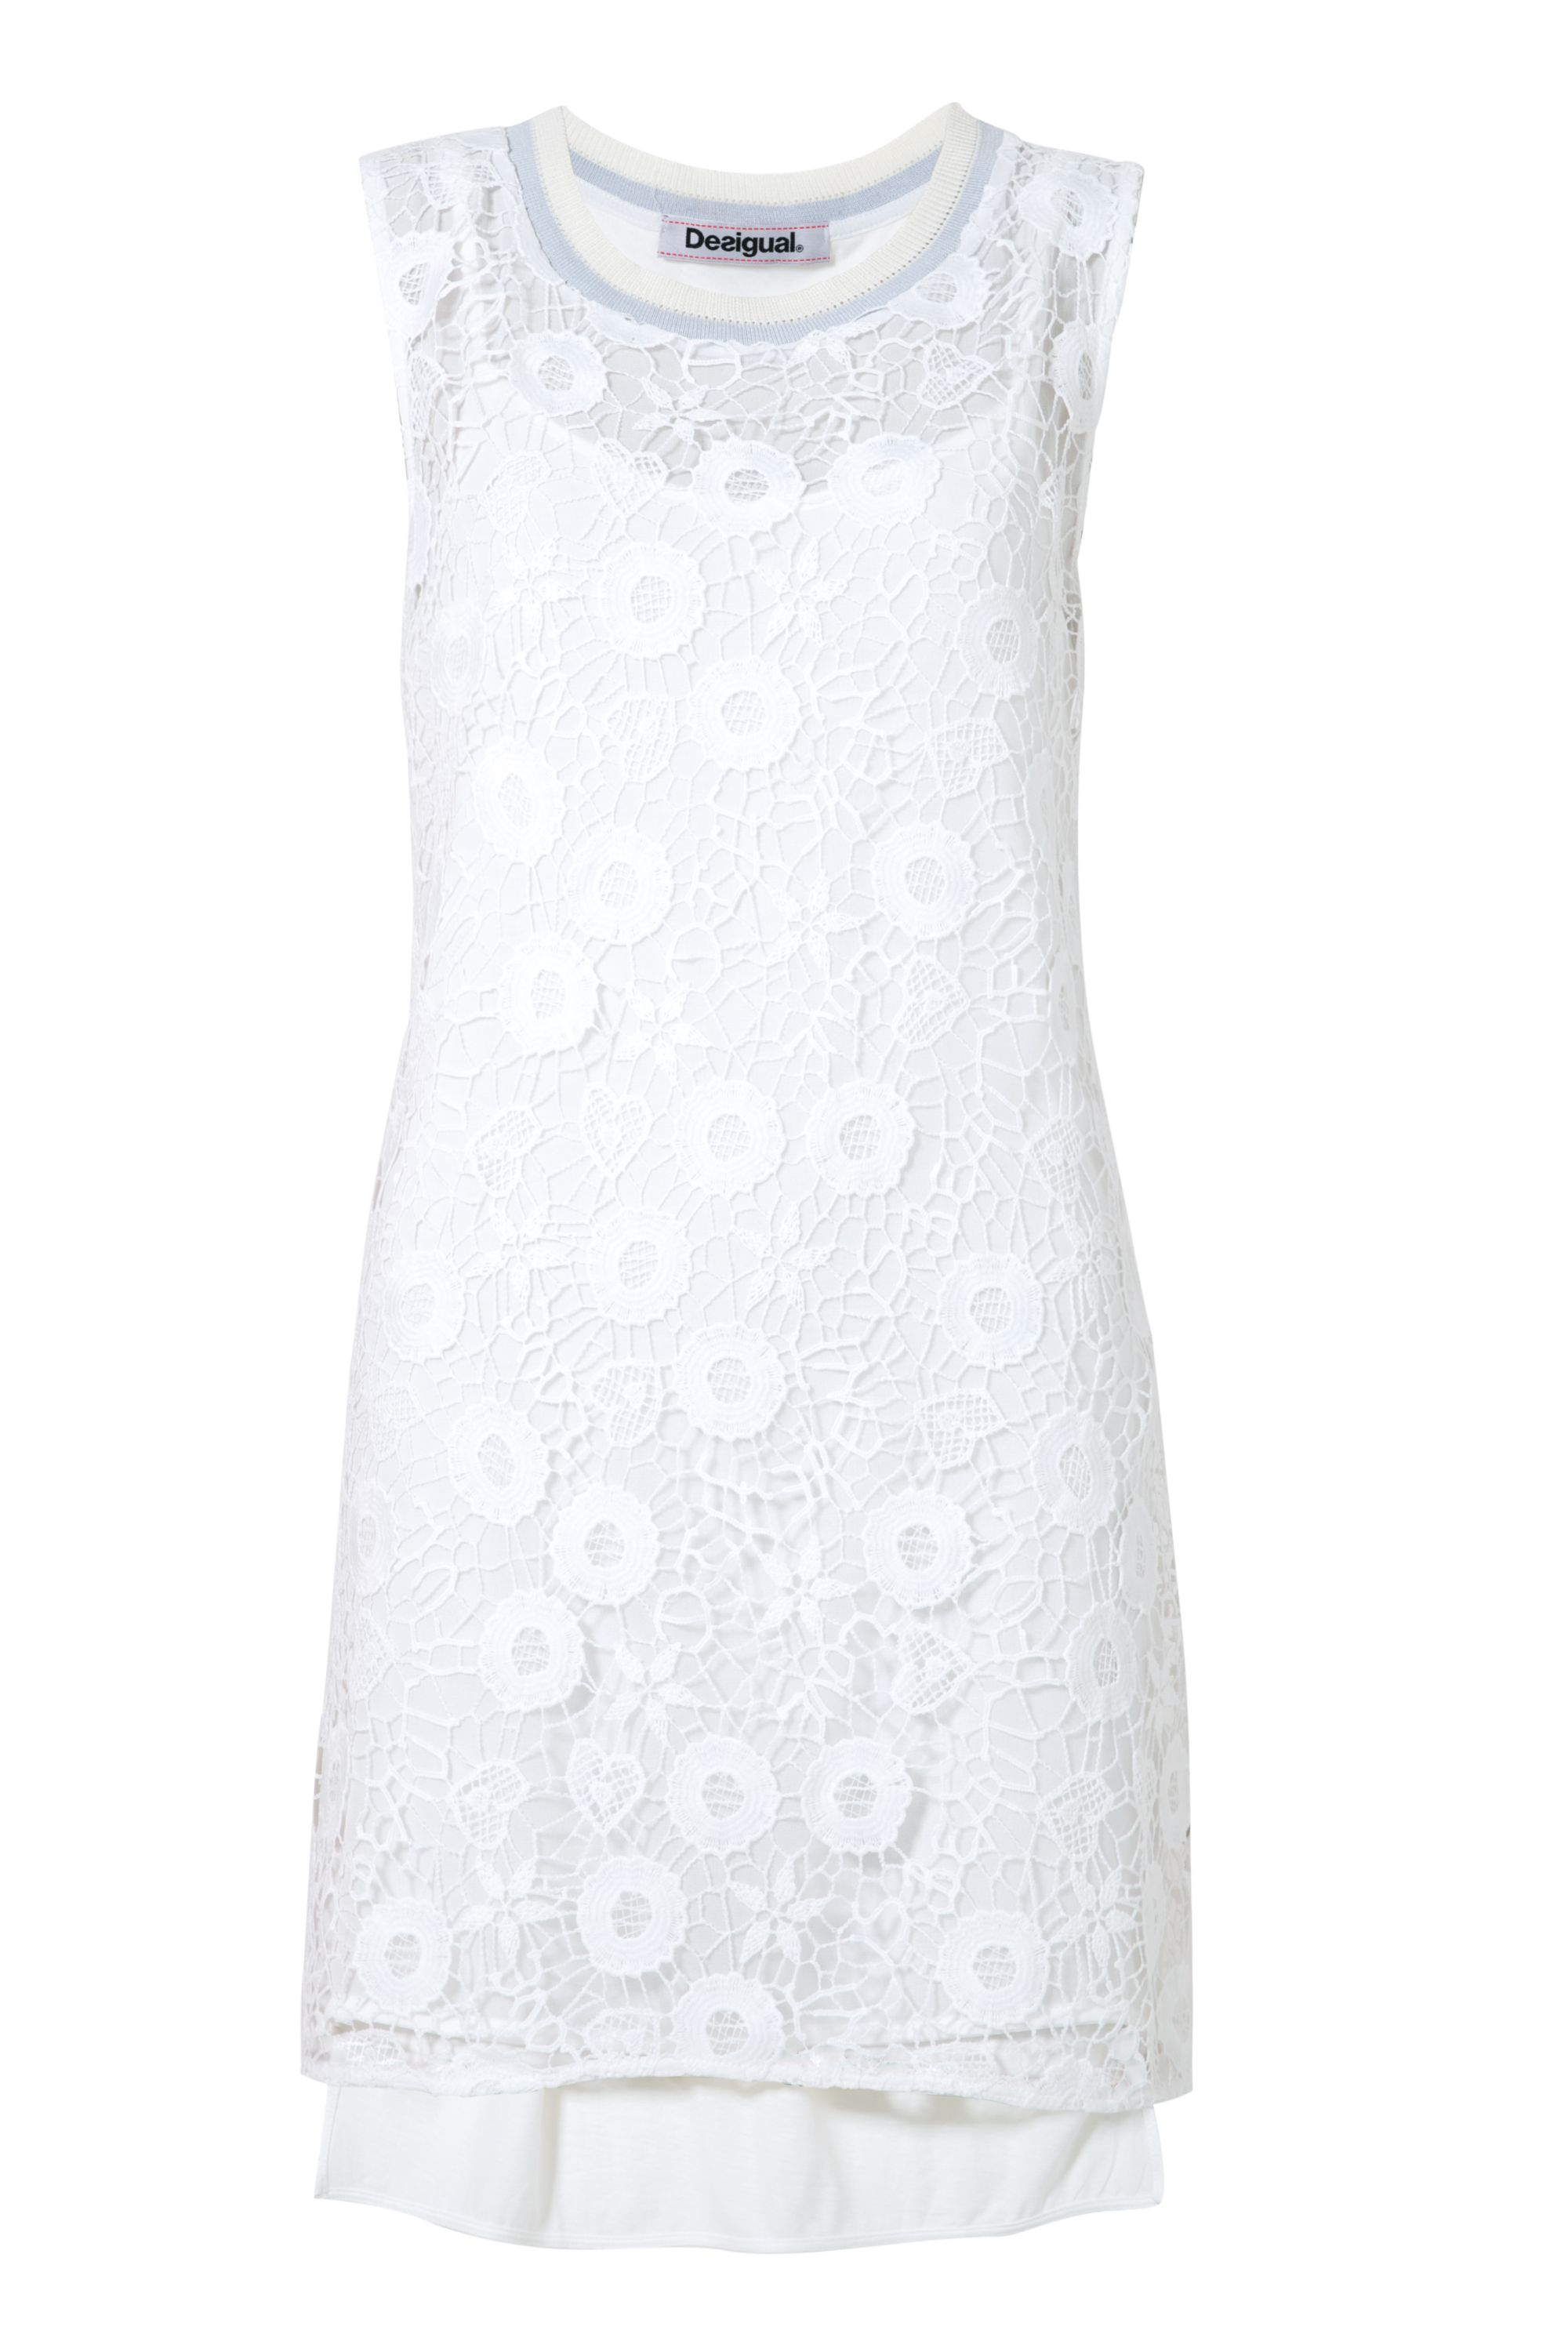 Desigual Dress Mauricio, White